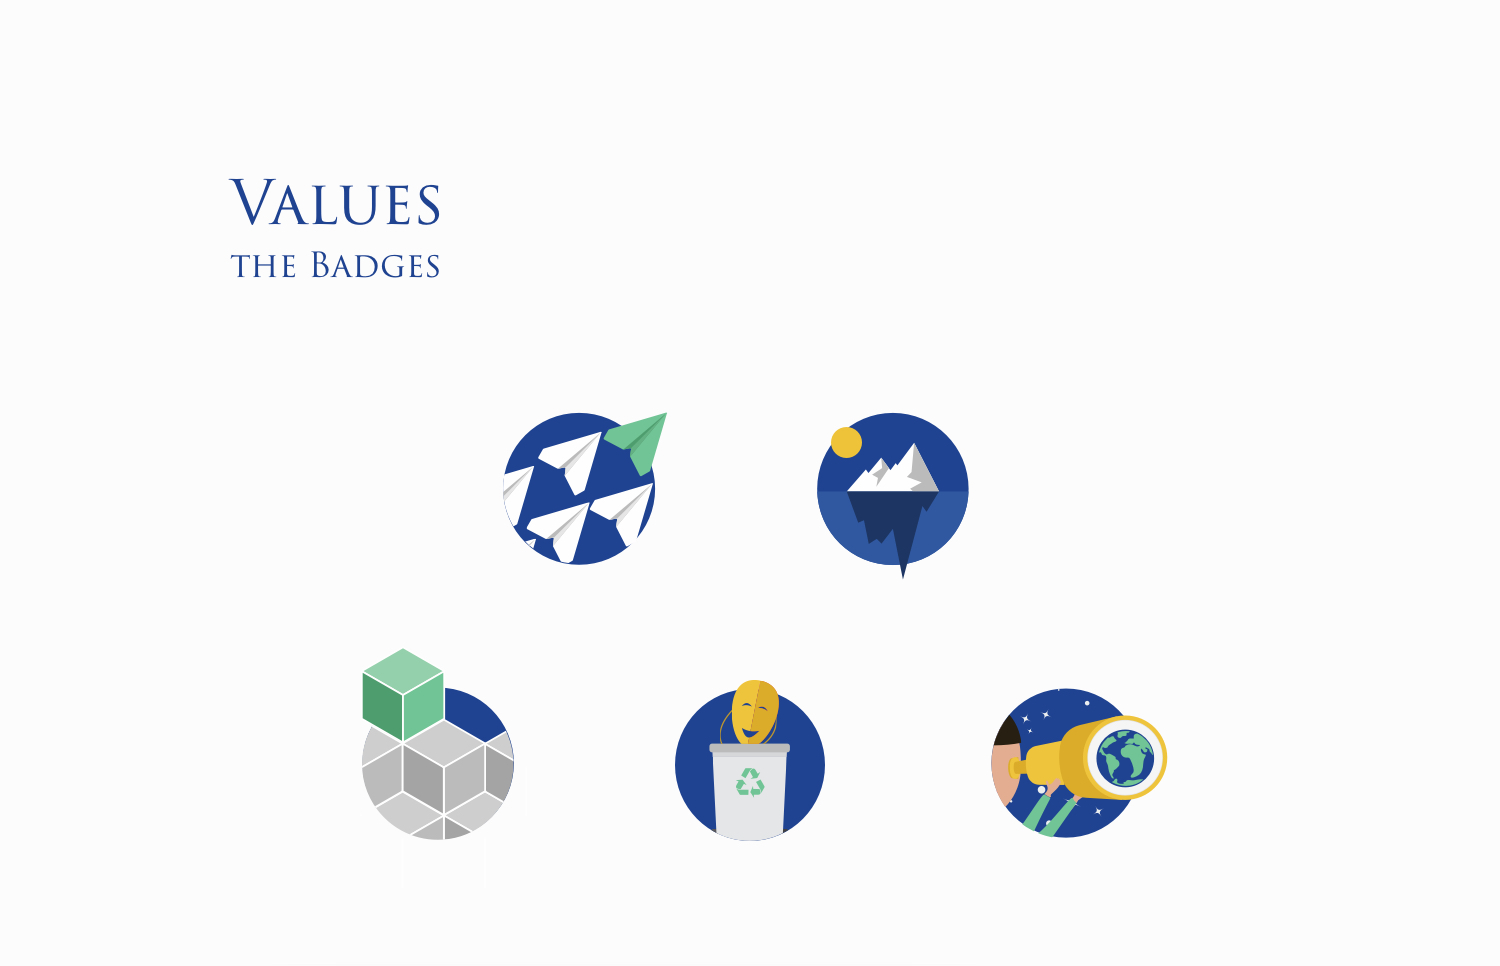 Values and Badges